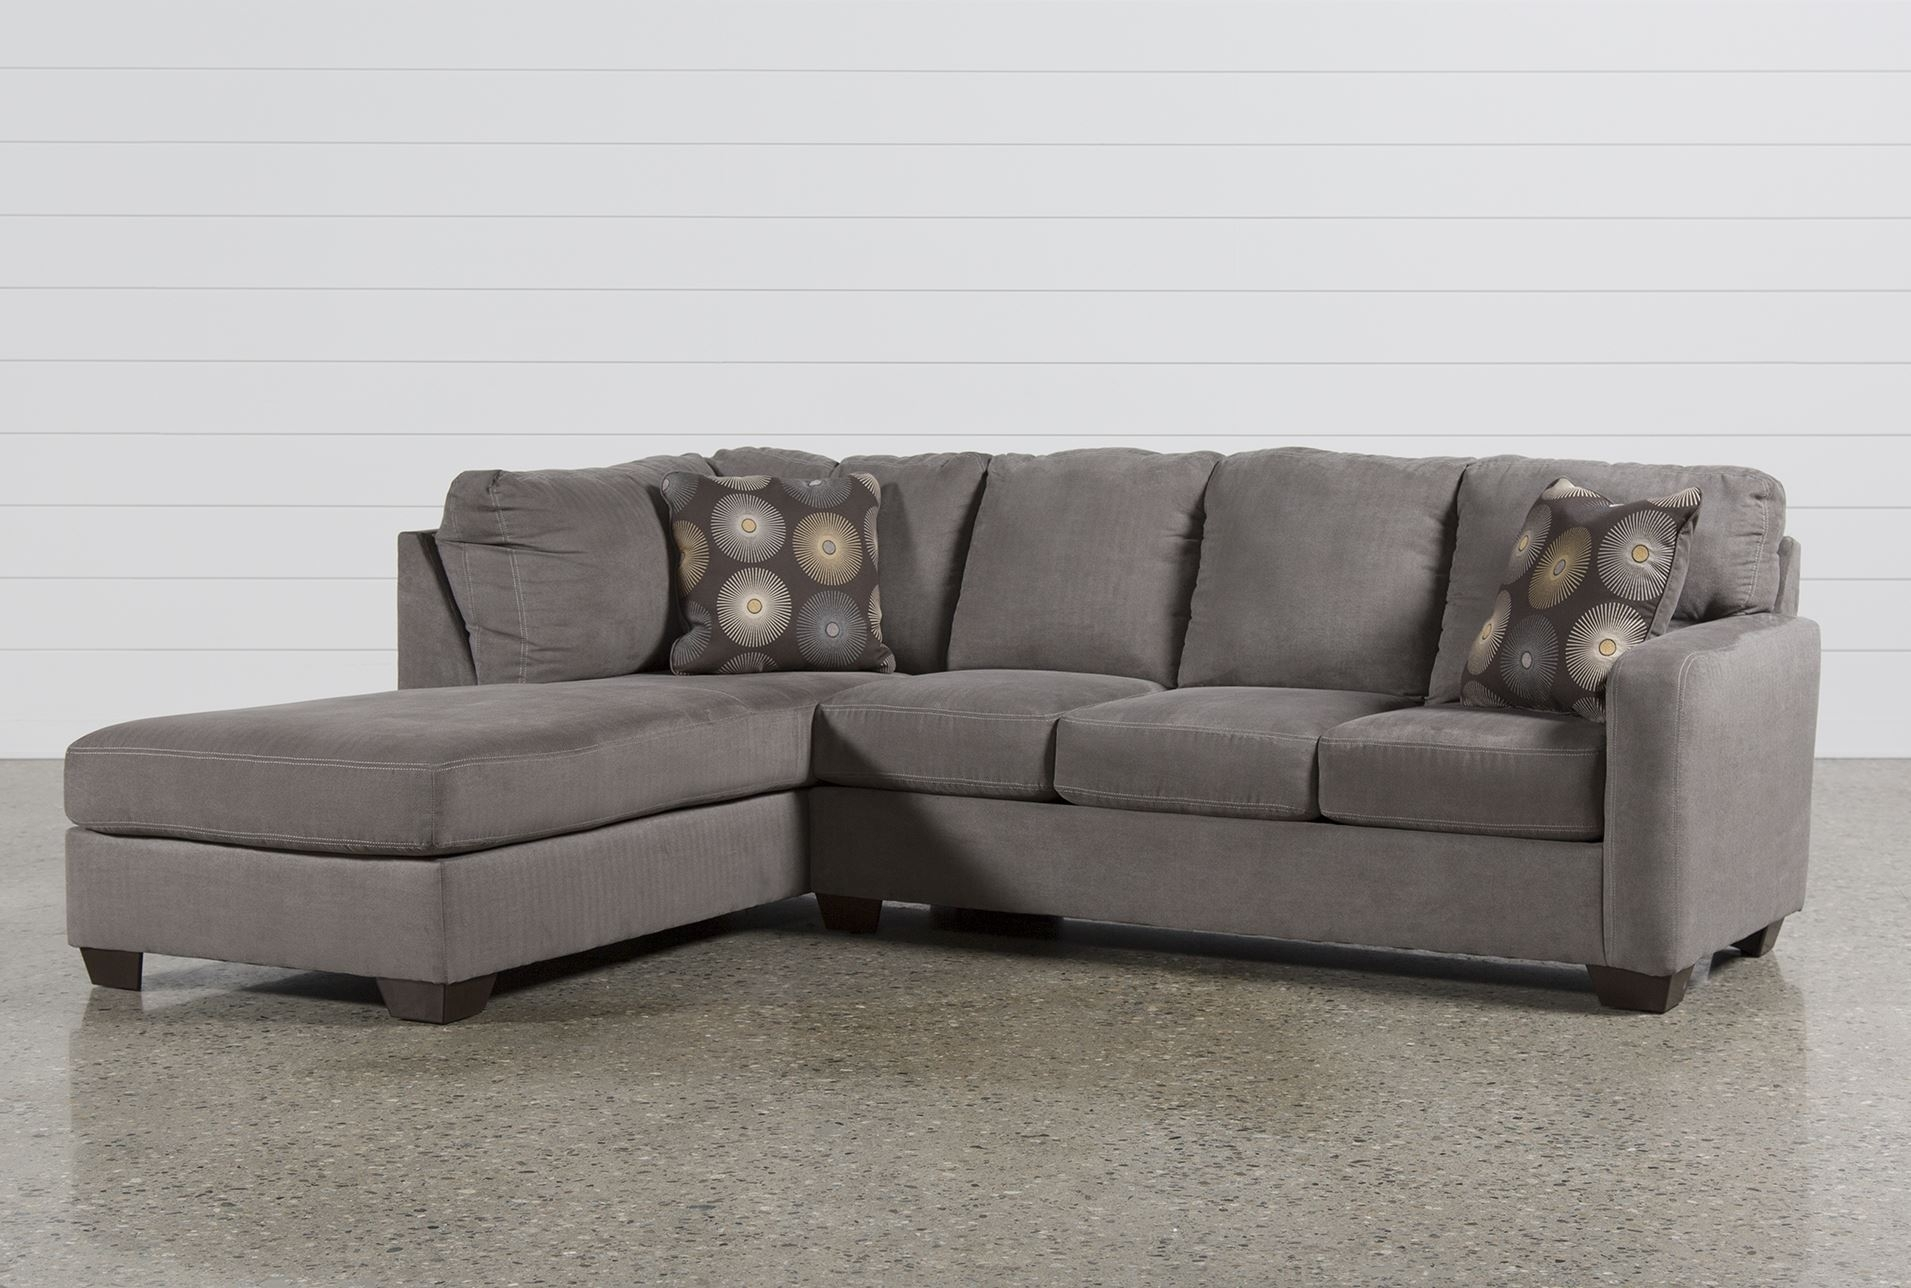 Laf Chaise Sectional Sofa | Baci Living Room inside Arrowmask 2 Piece Sectionals With Sleeper & Left Facing Chaise (Image 12 of 30)